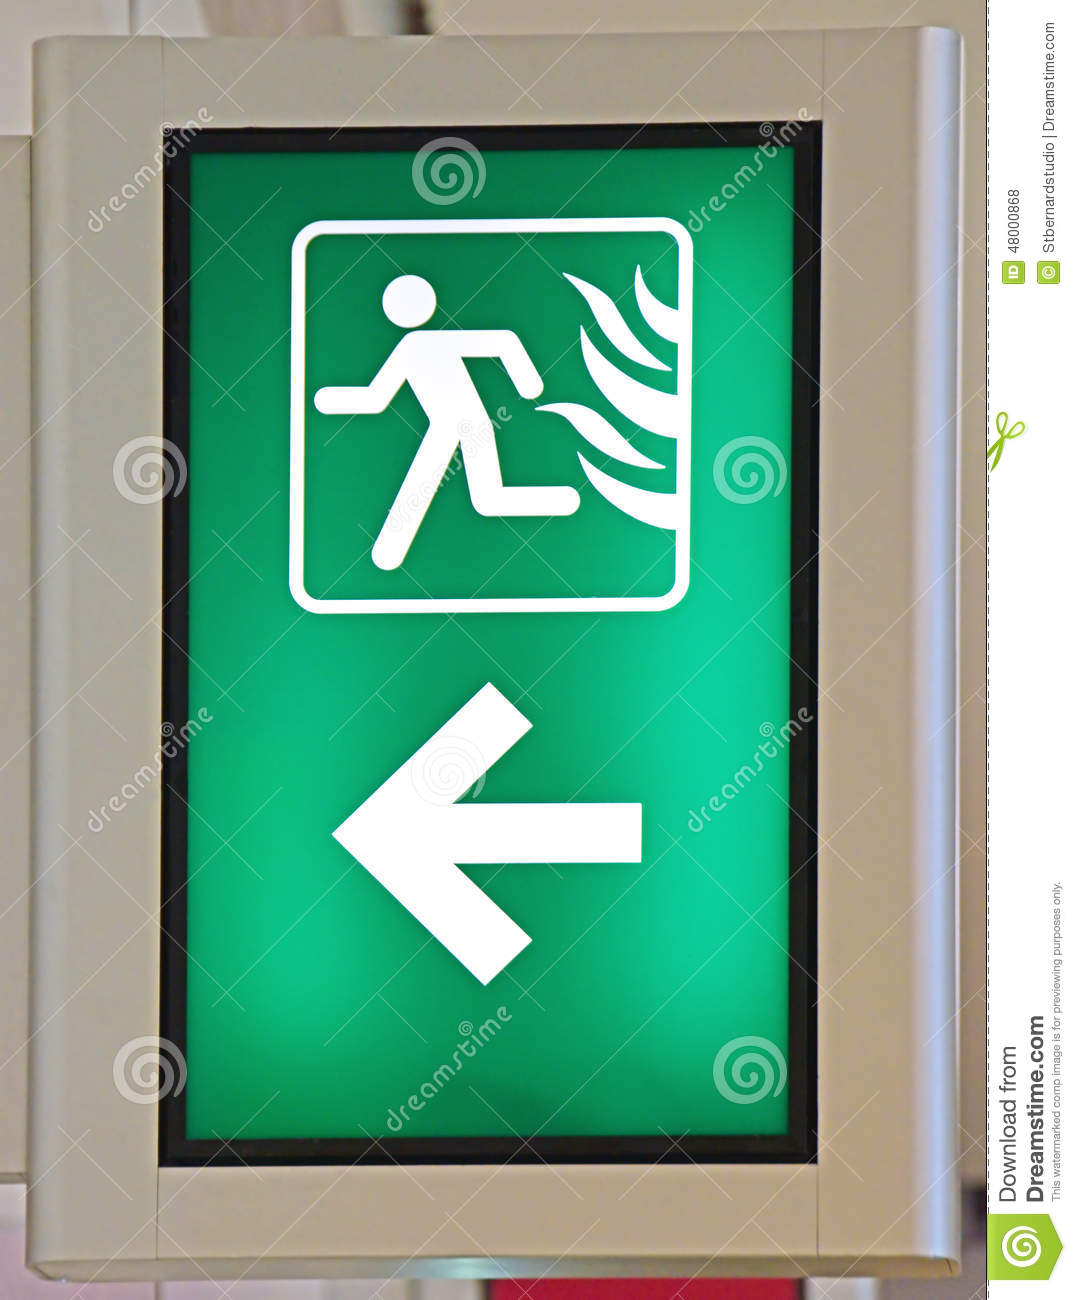 Emergency Fire Exit Sign In Green Color Stock Photo - Image of ...